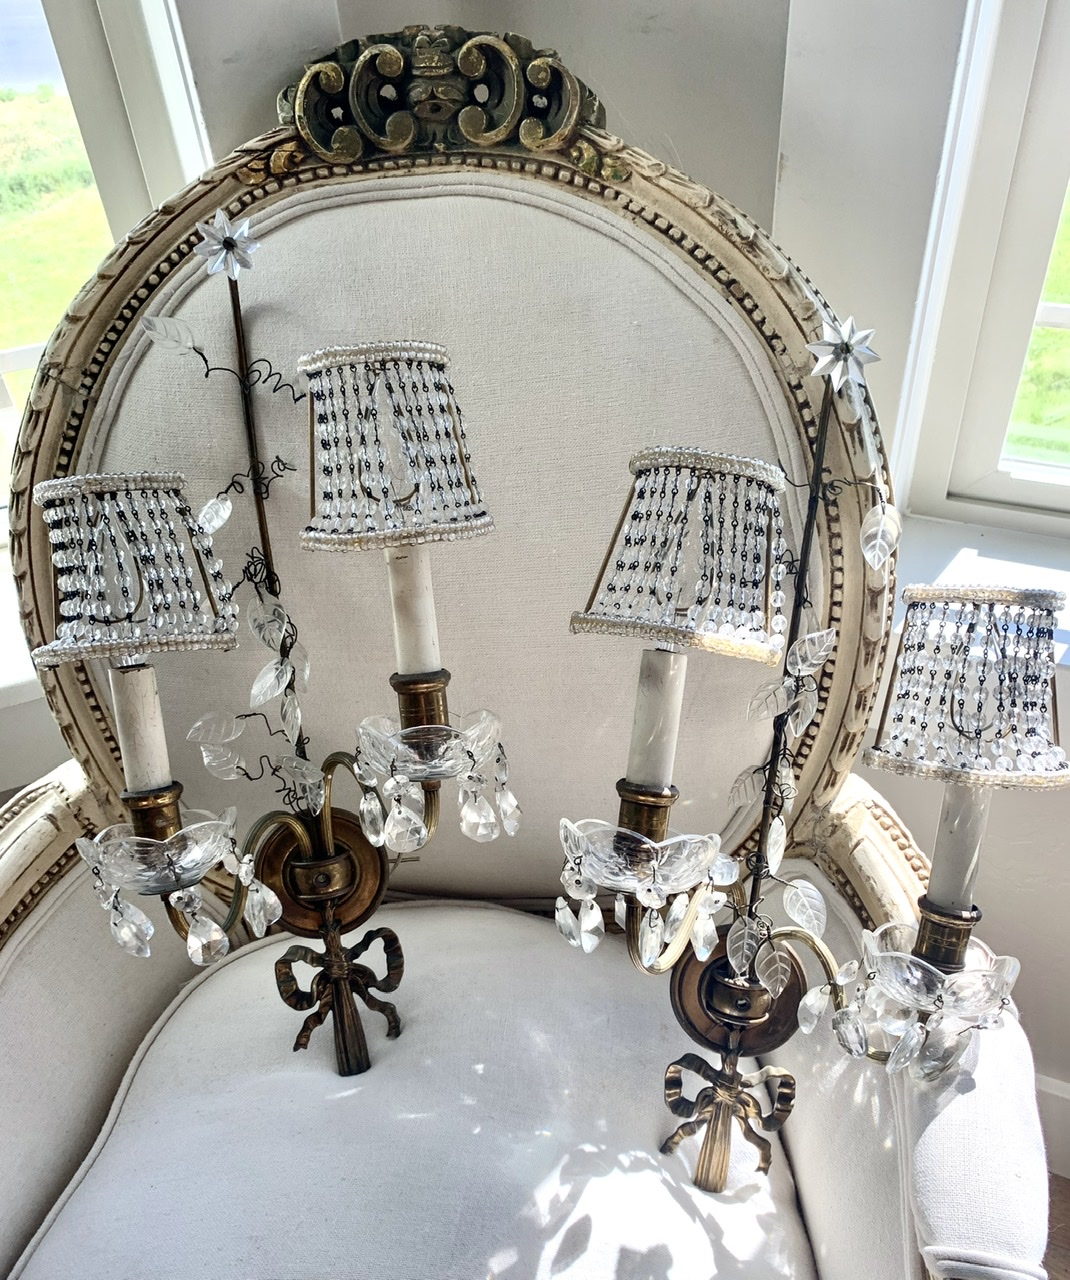 Incredible French Wall Sconces with Original Beaded Shades